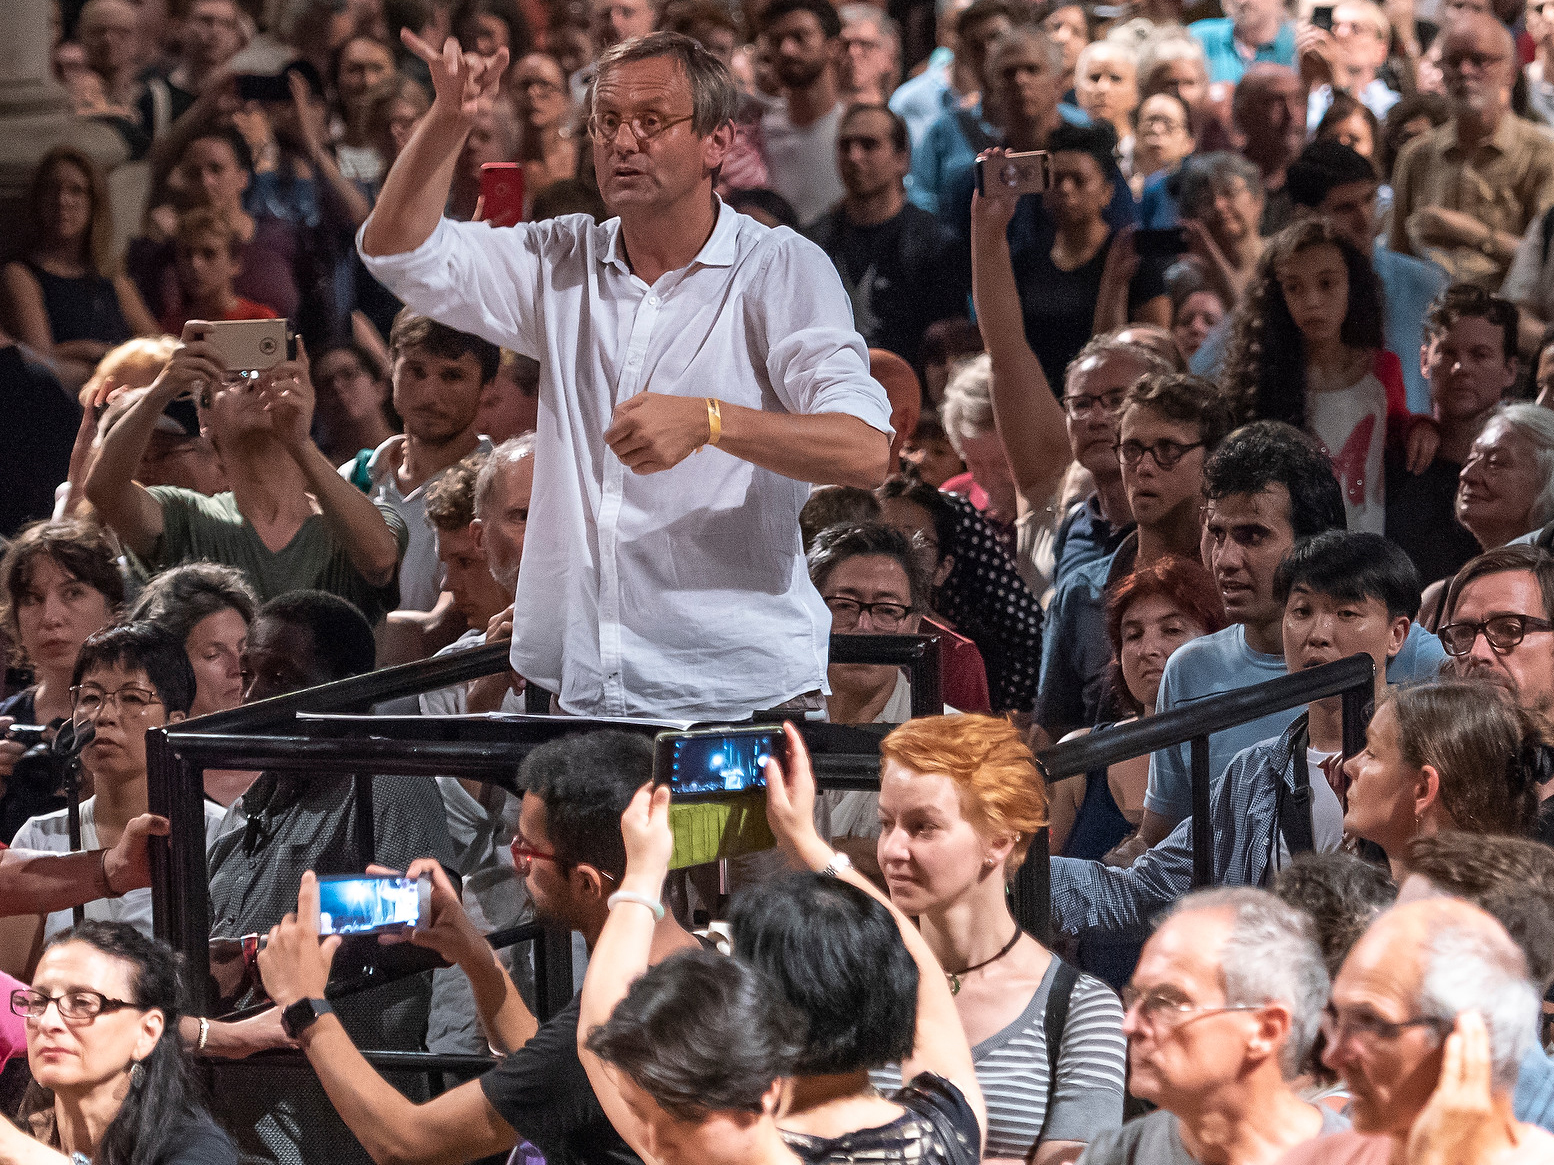 Conductor Simon Halsey stands on a platform with raised arms, surrounded by people, some holding phones to take photos.